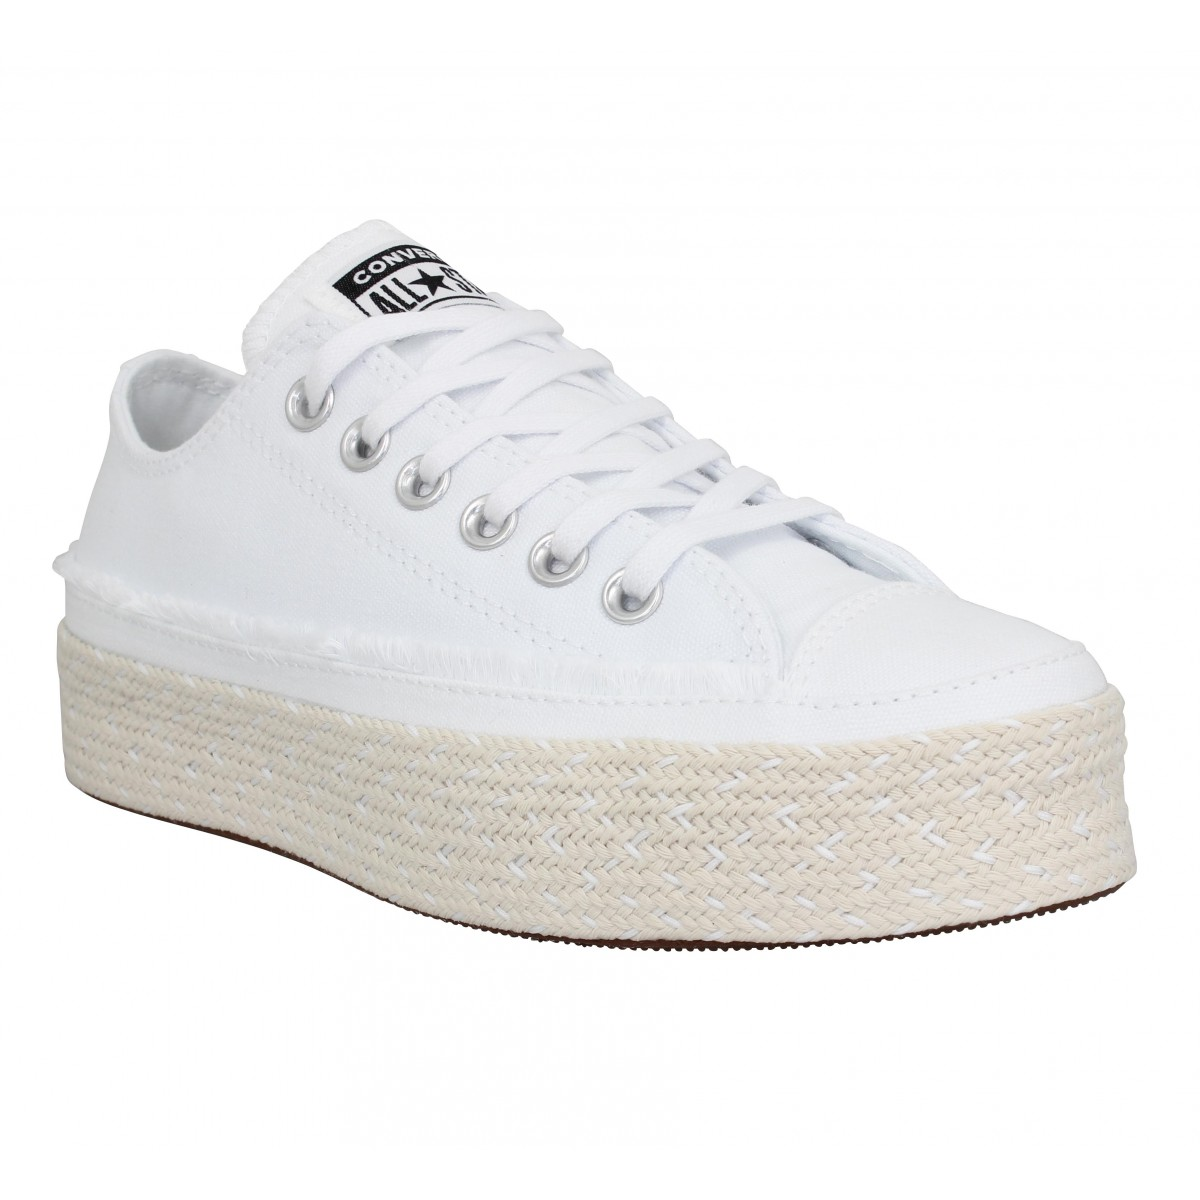 Baskets CONVERSE Chuck Taylor All Star Espadrille toile Femme Blanc